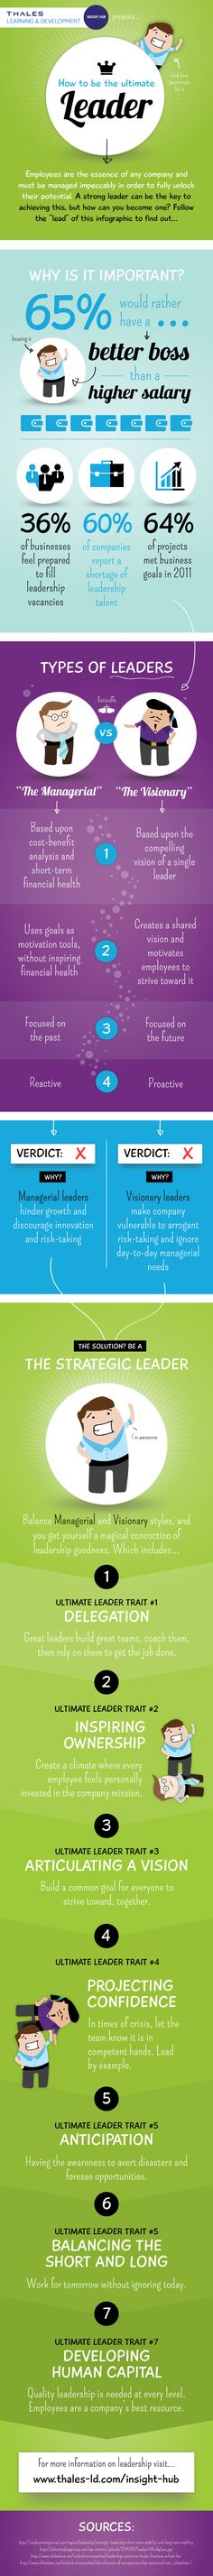 Infographic: Become a Better Leader